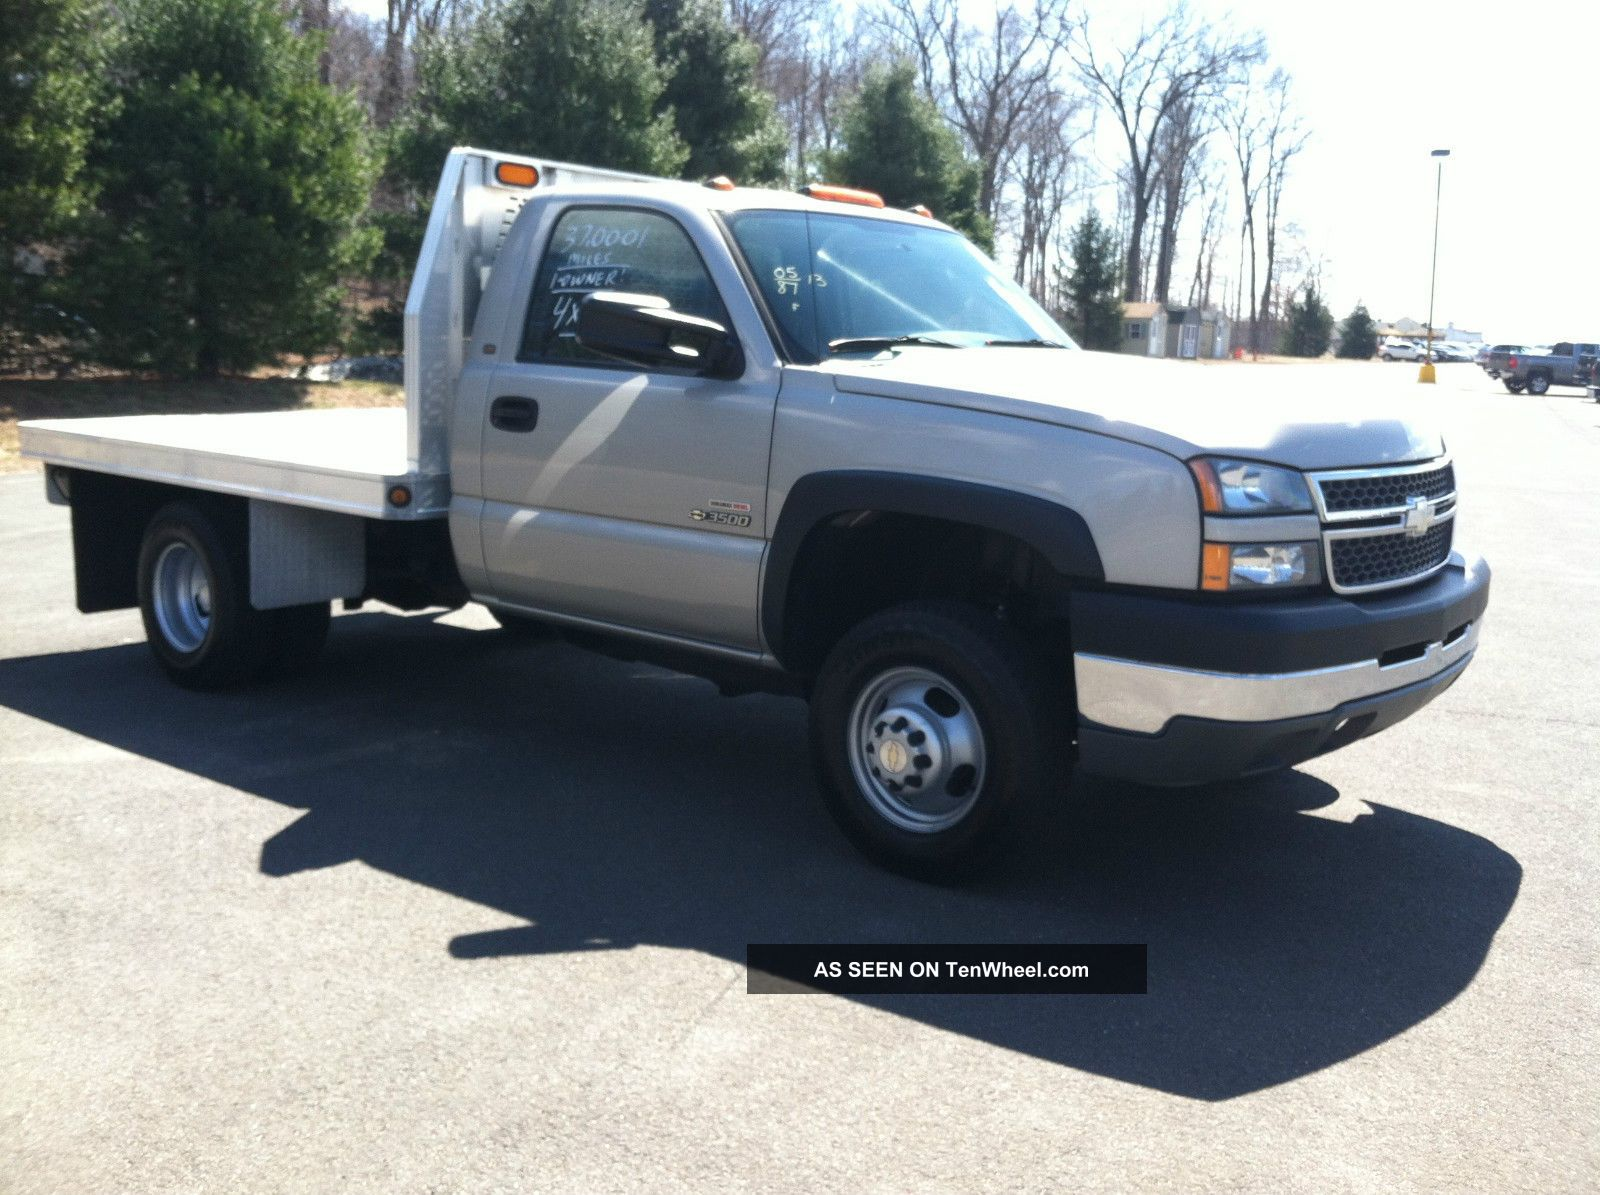 2016 Gmc flatbed photo - 1